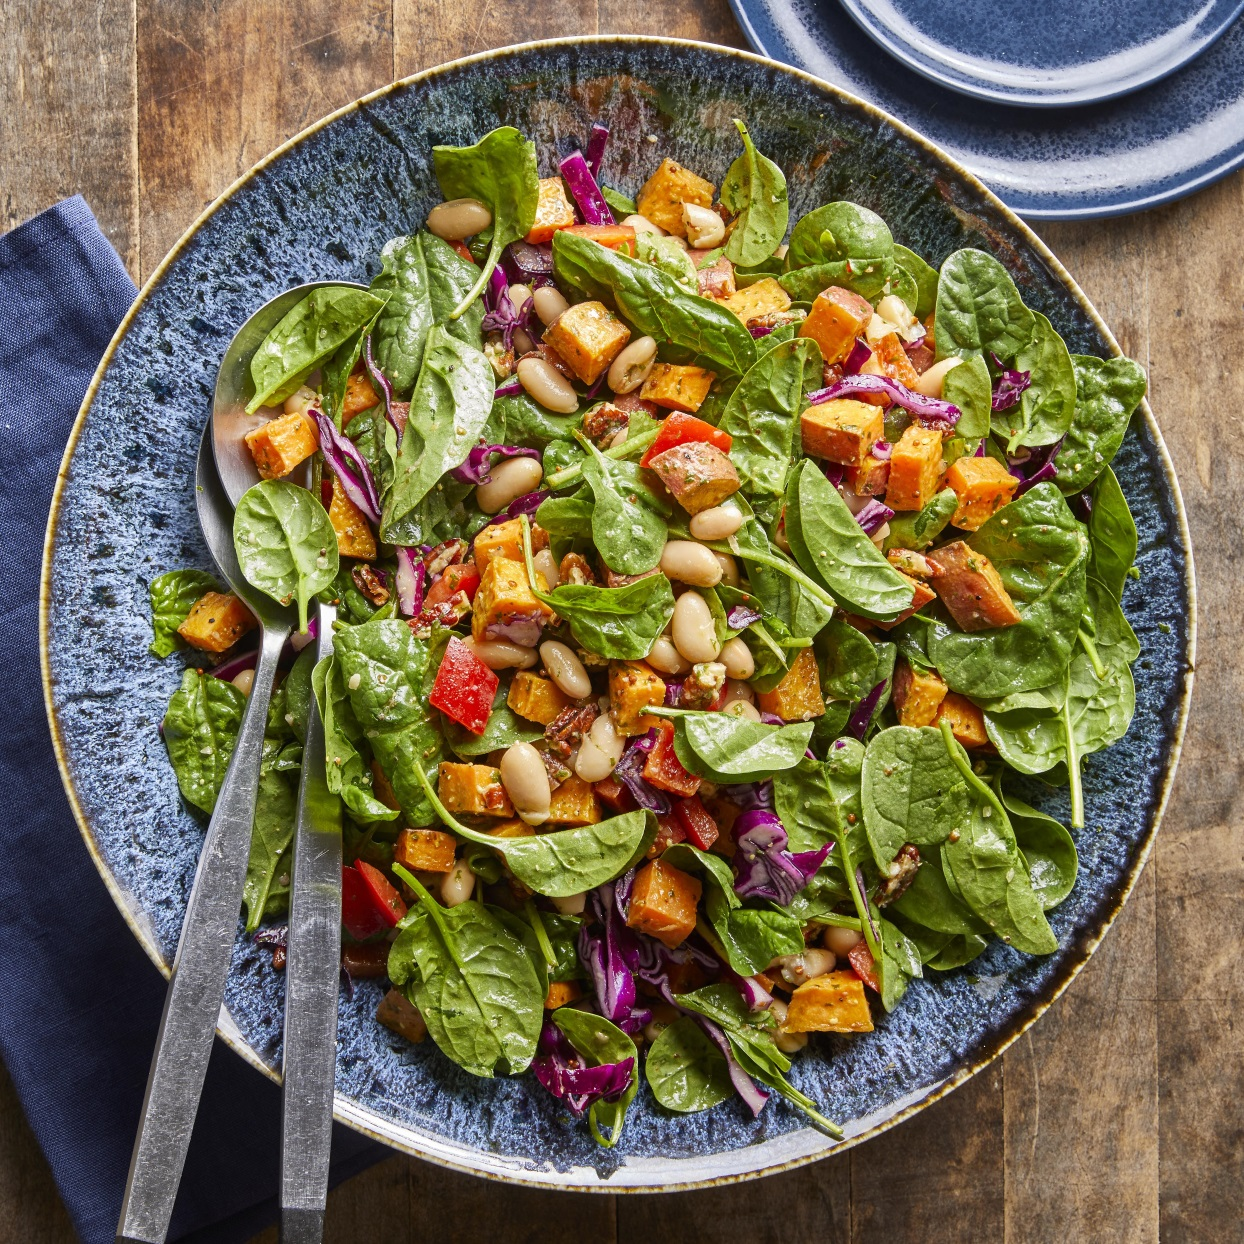 Roasted sweet potatoes are paired with spinach, cabbage and white beans and tossed together with a bright basil dressing in this healthy main dish salad. Source: EatingWell.com, December 2019